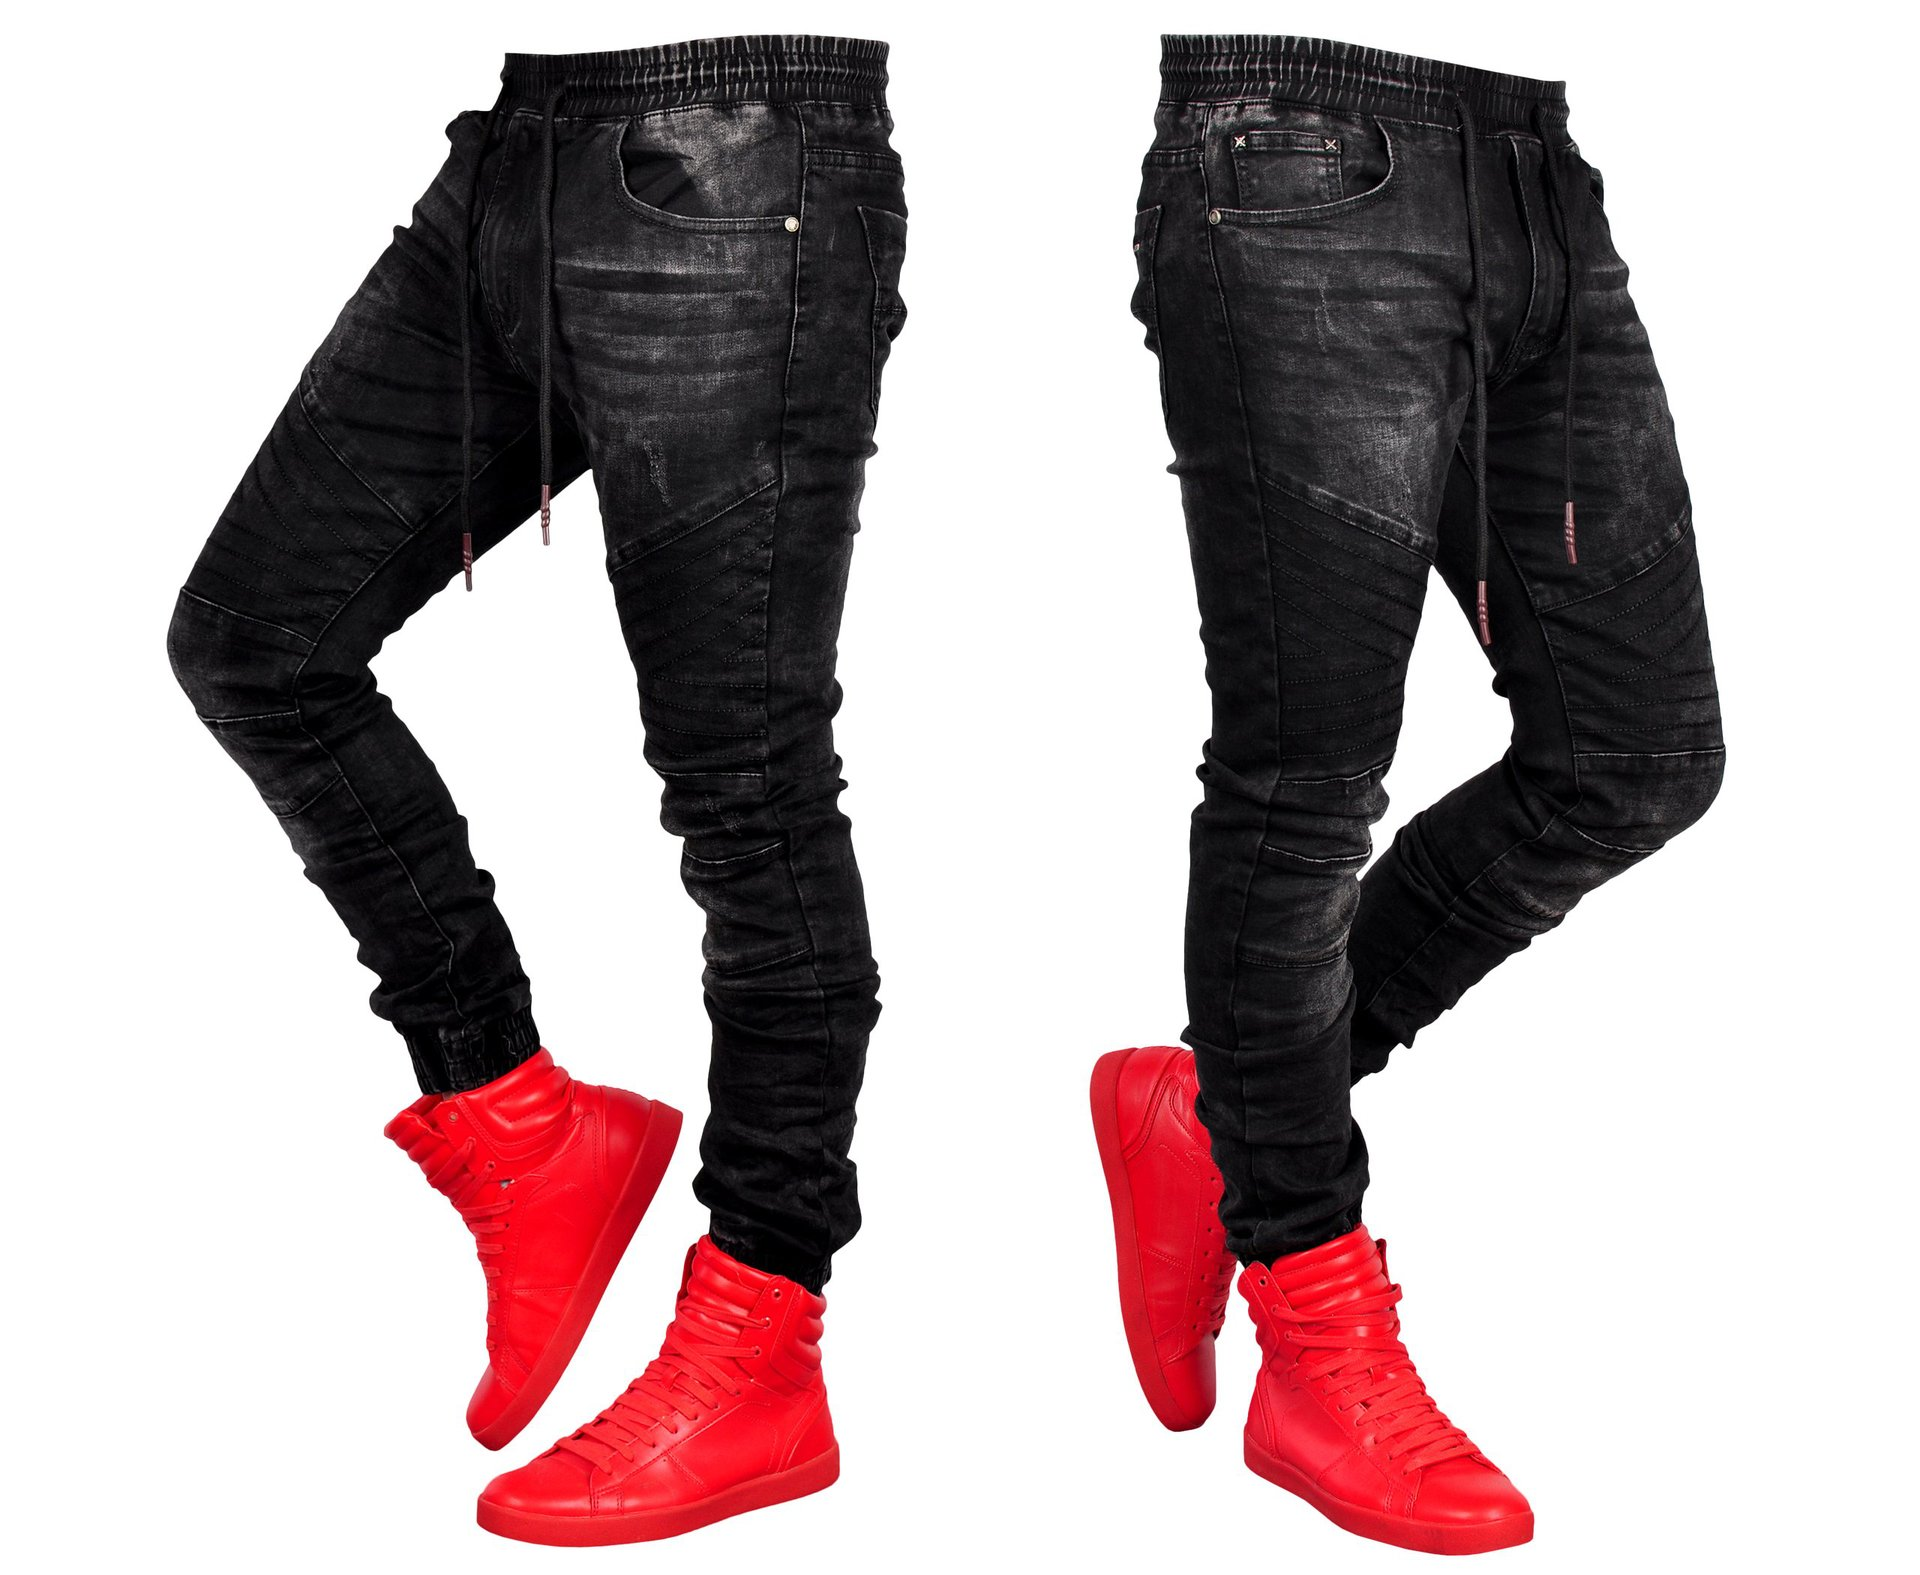 Joggers Jeans Pant 2020 Pantalon Mezclilla Newest Men's Jogger Fashion Elastic Slim Waist Black Jeans Men Summer Men's Jeans